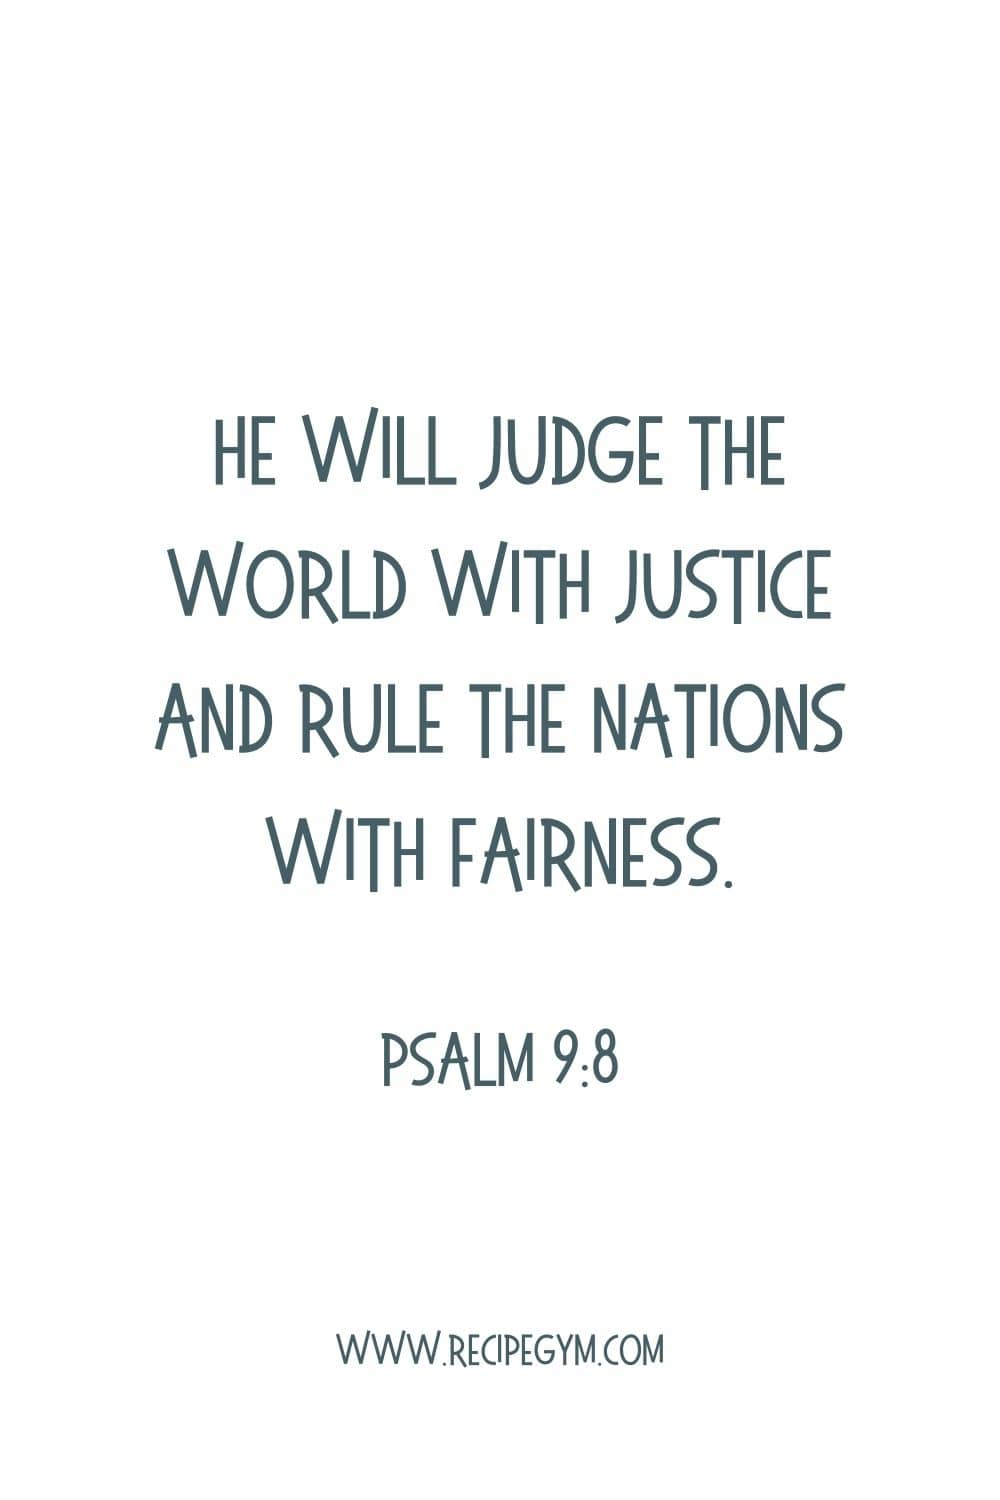 40 powerful bible verses about justice and equality | faith fitness food